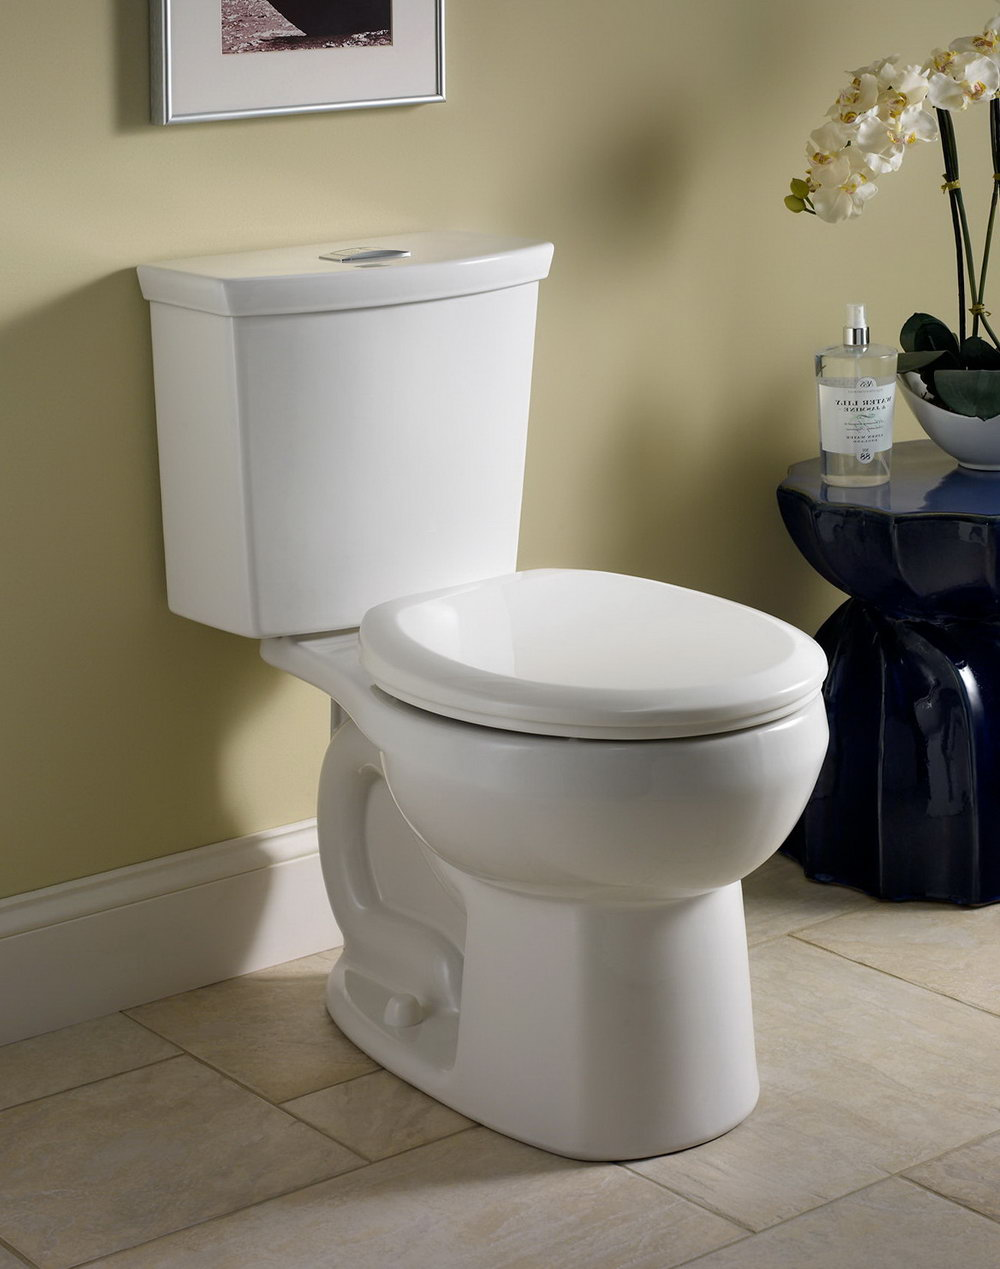 American Standard Water Closet Price Philippines